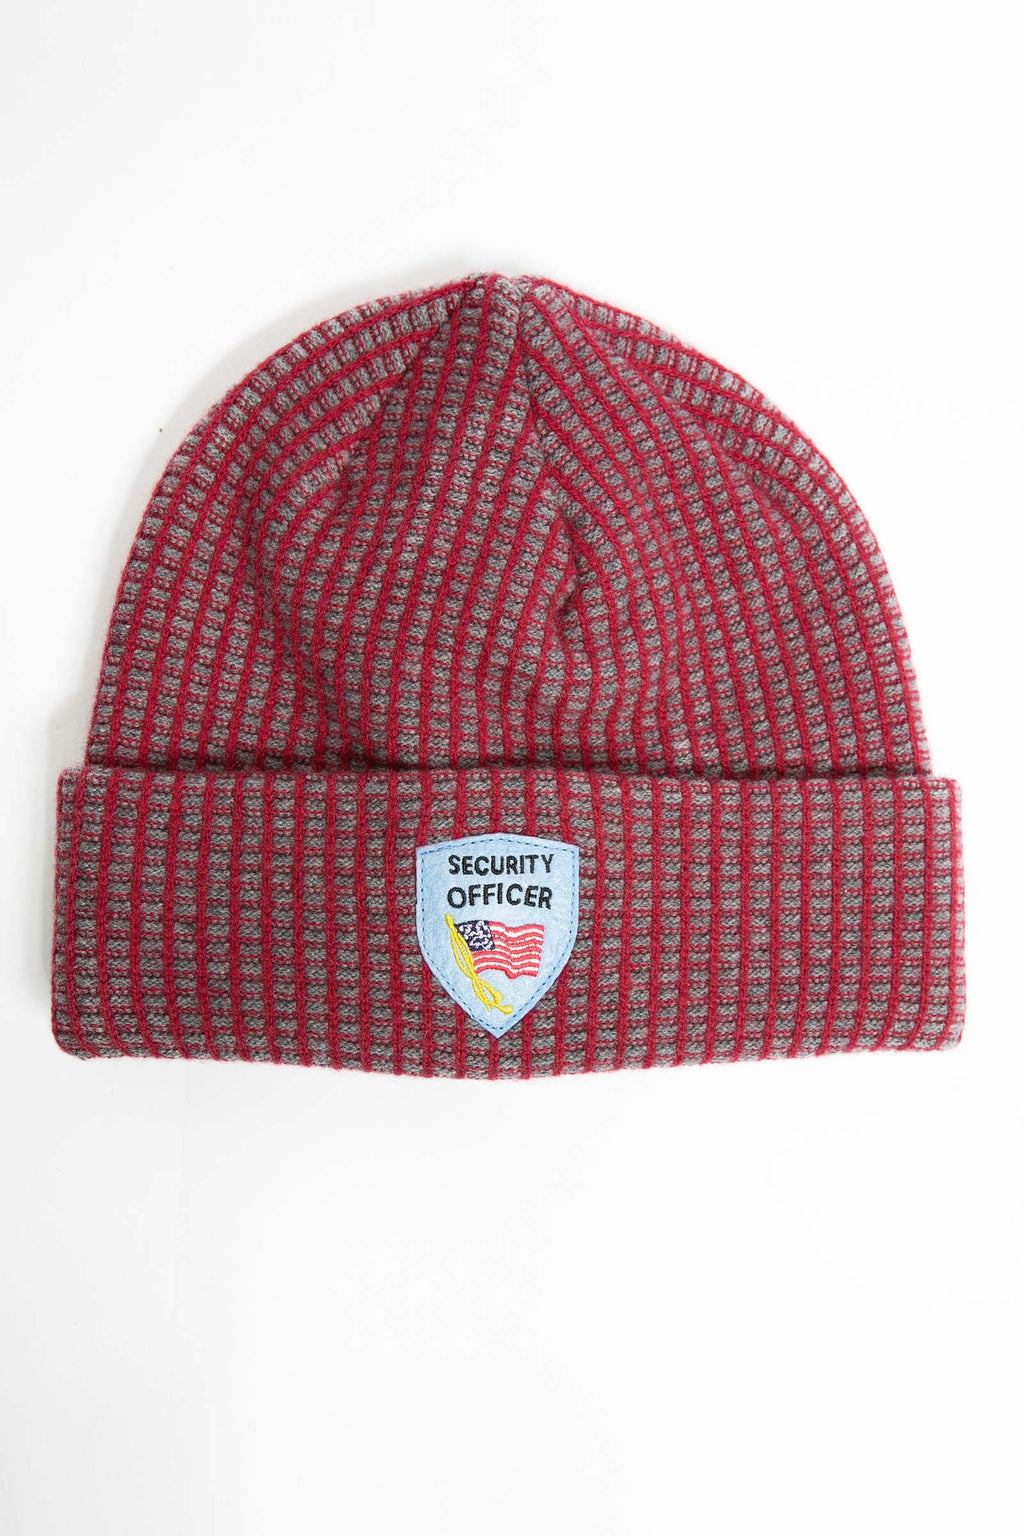 I.S.M. 'Security Officer' Red Cashmere Beanie